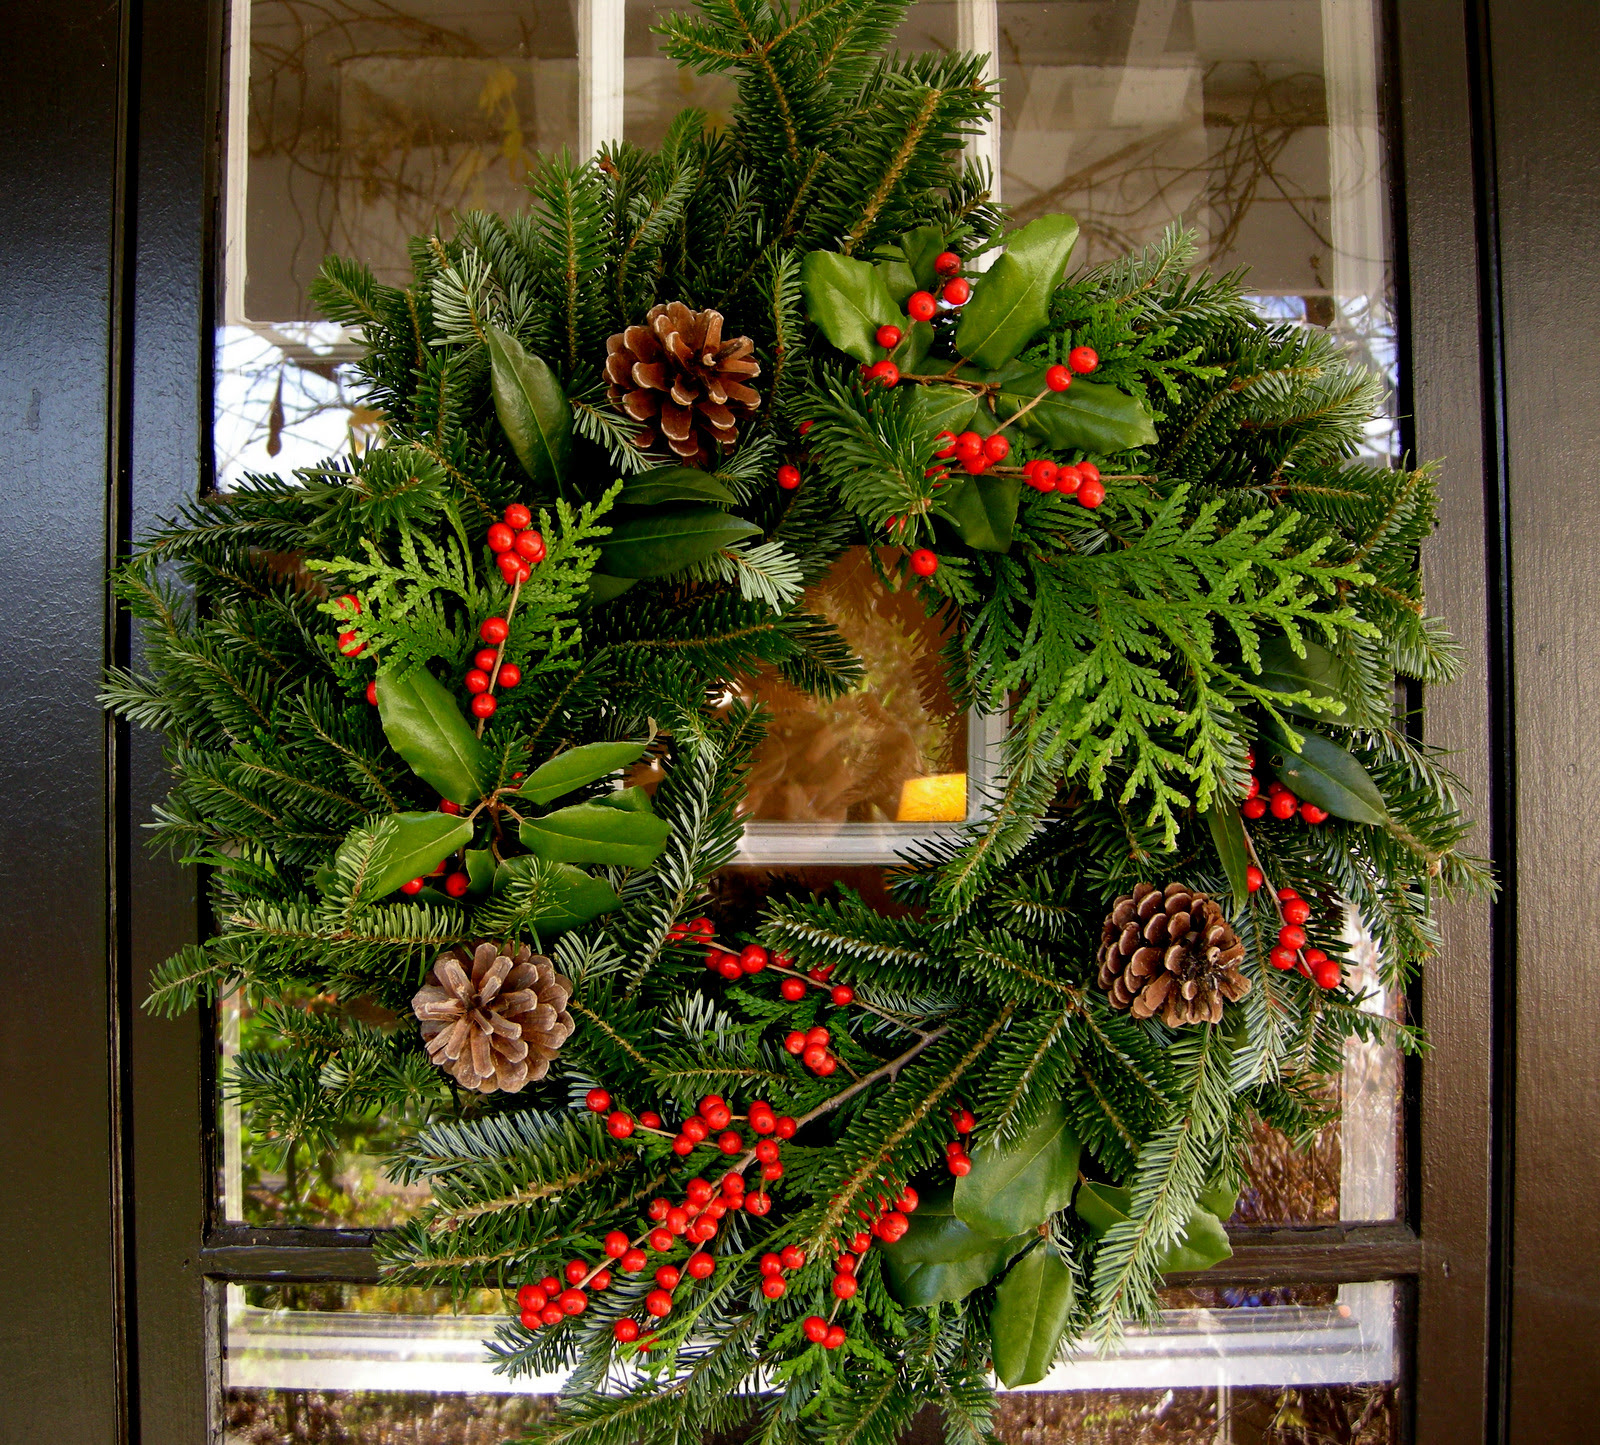 decorations done with plain green wreath made with Christmas plant